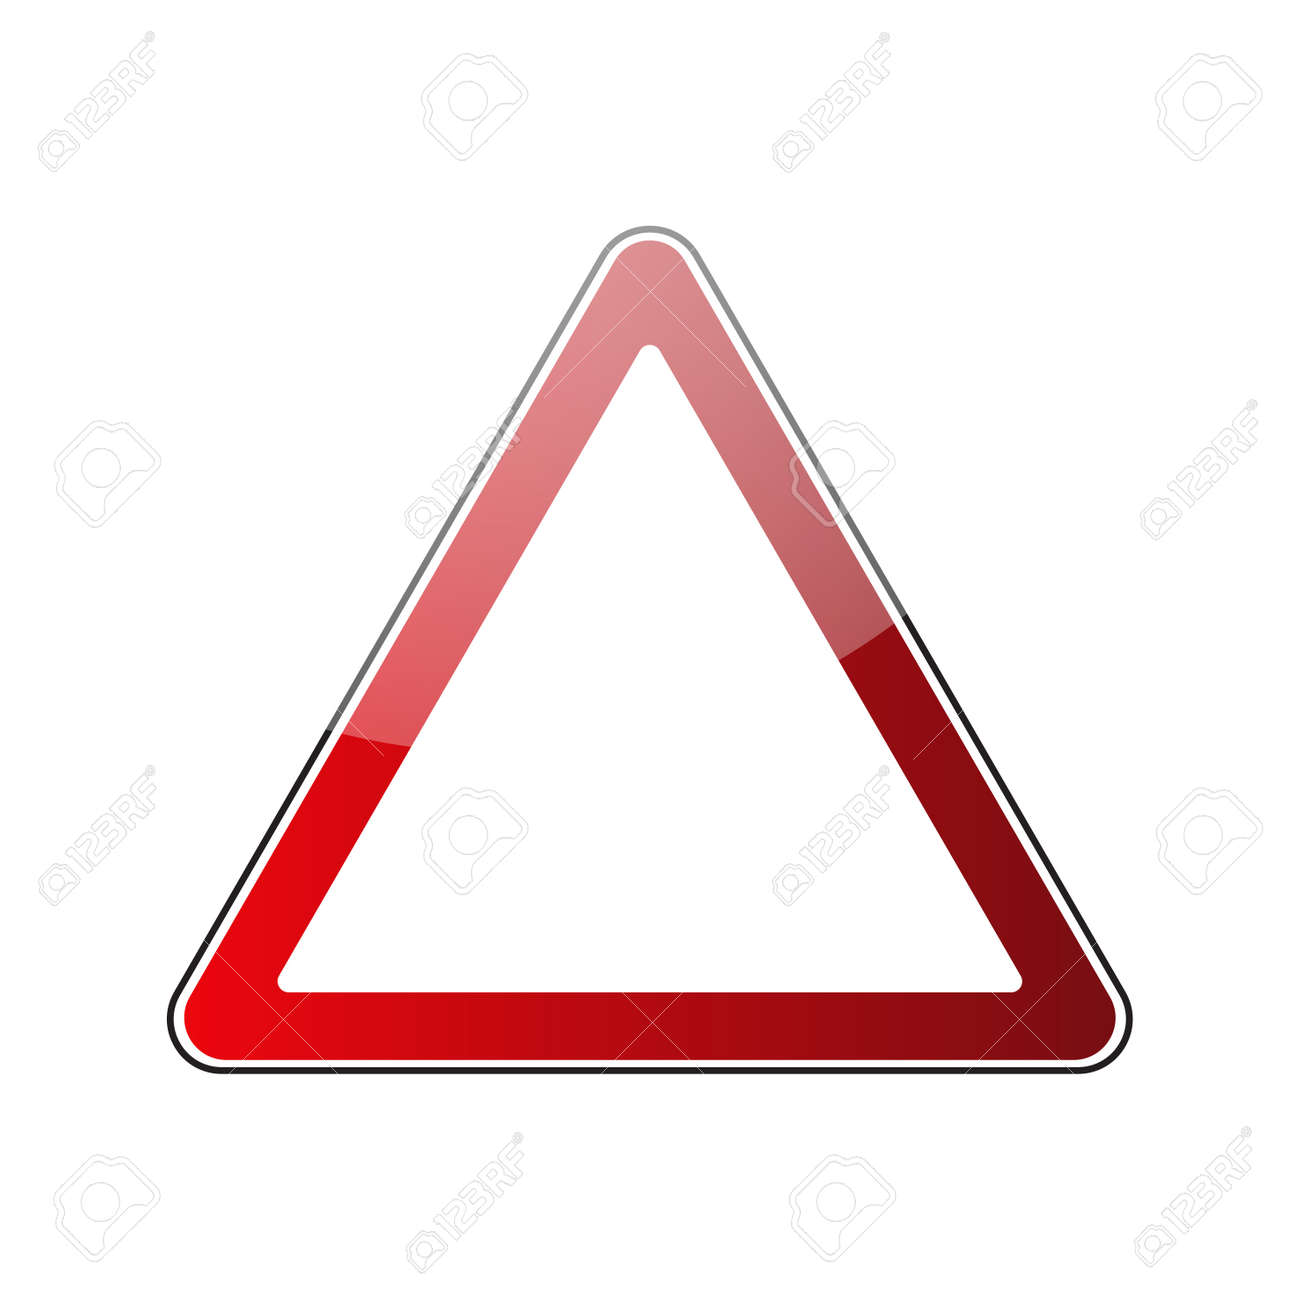 Triangle Warning Sign Blank Danger Red Triangular Road Sign